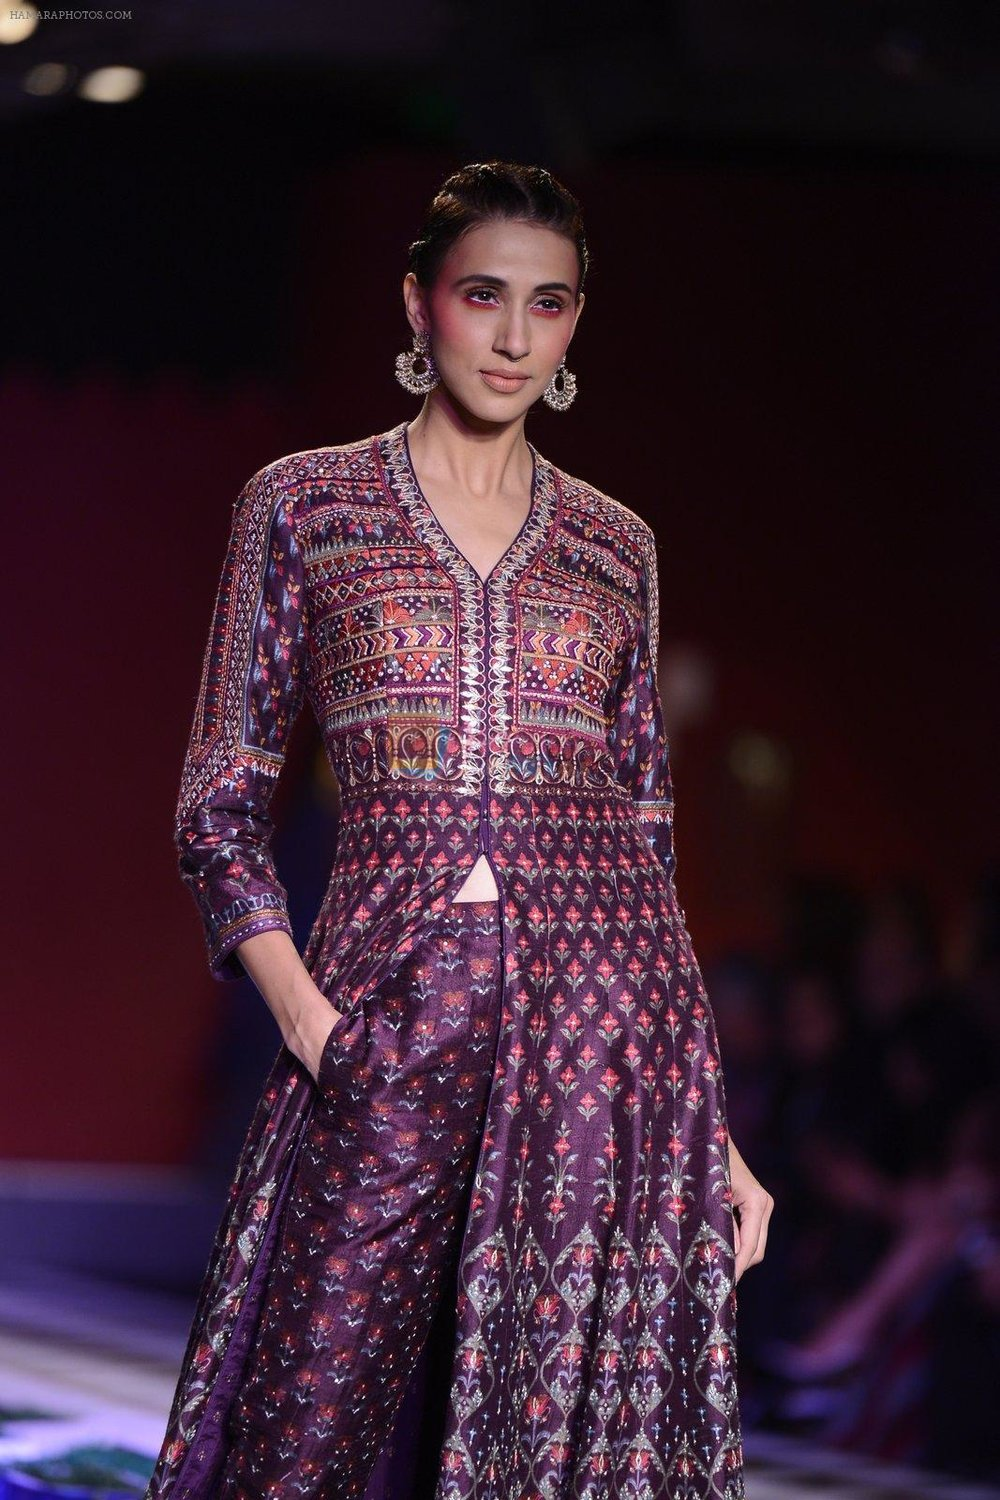 Alecia-Raut-walk-the-ramp-for-Anita-Dongre-show-at-the-FDCI-India-Couture-Week-2016-on-21st-July-2016.jpg